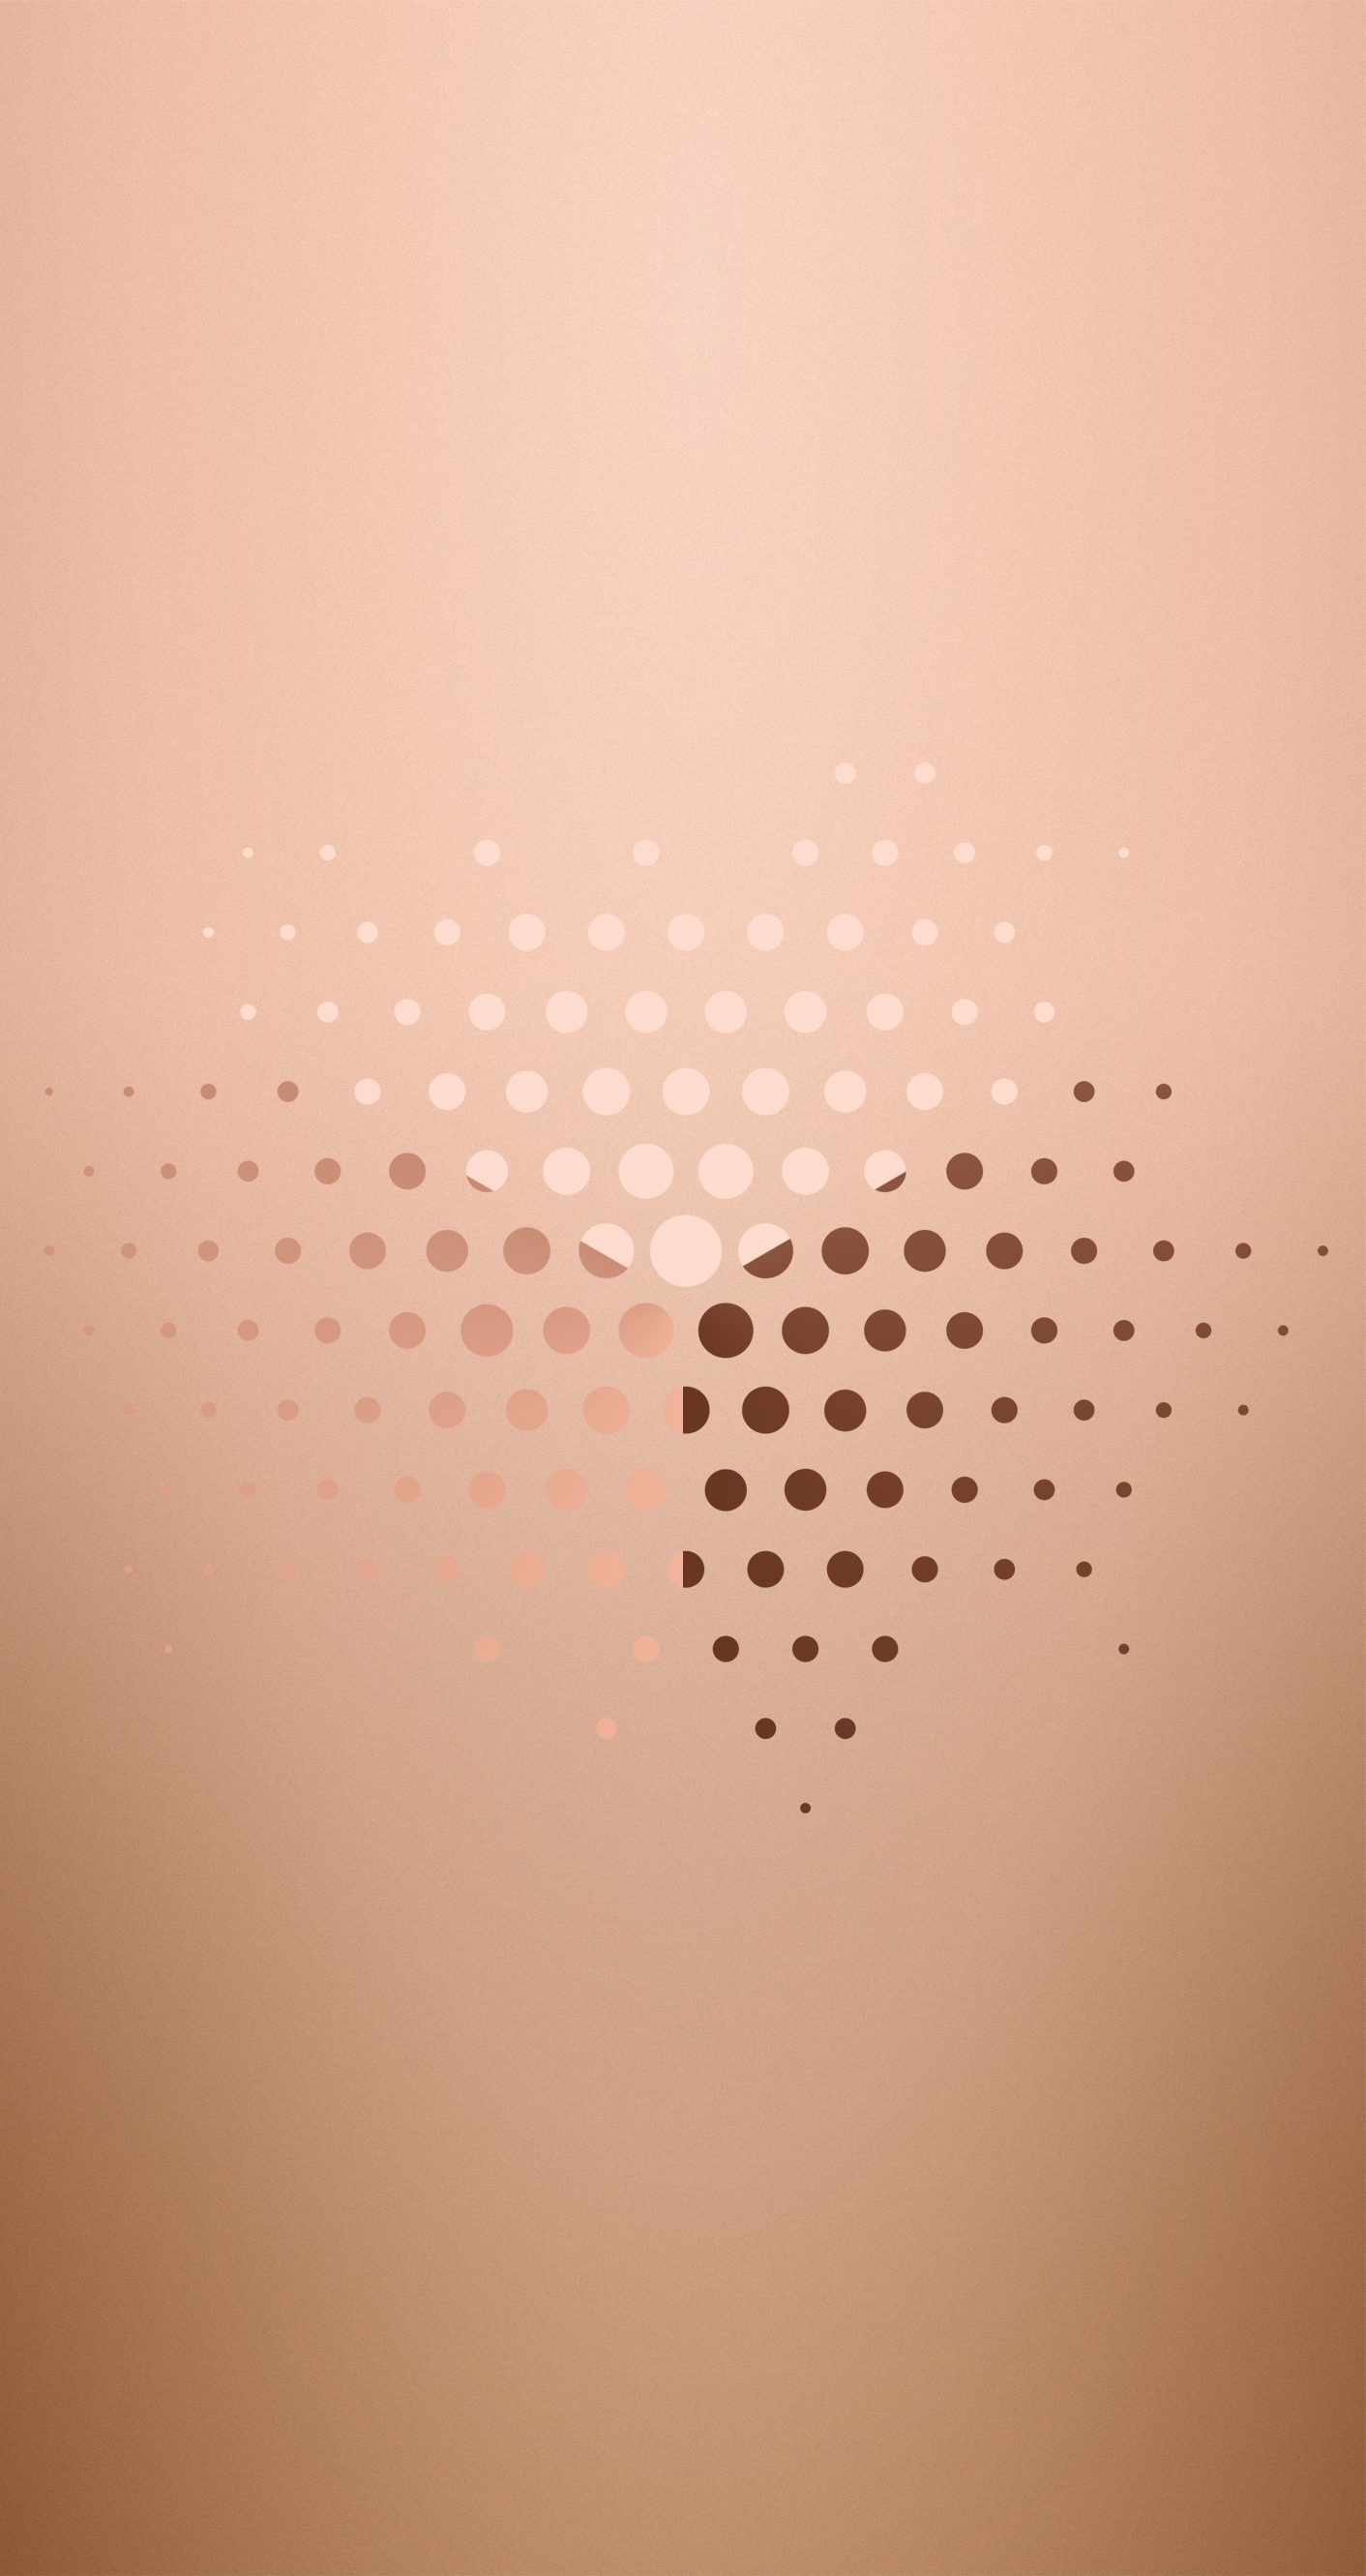 20+ Cool Wallpapers & Backgrounds For Iphone 6 & Se In Hd Format with Wallpaper  Rose Gold : Foto Nakal CO